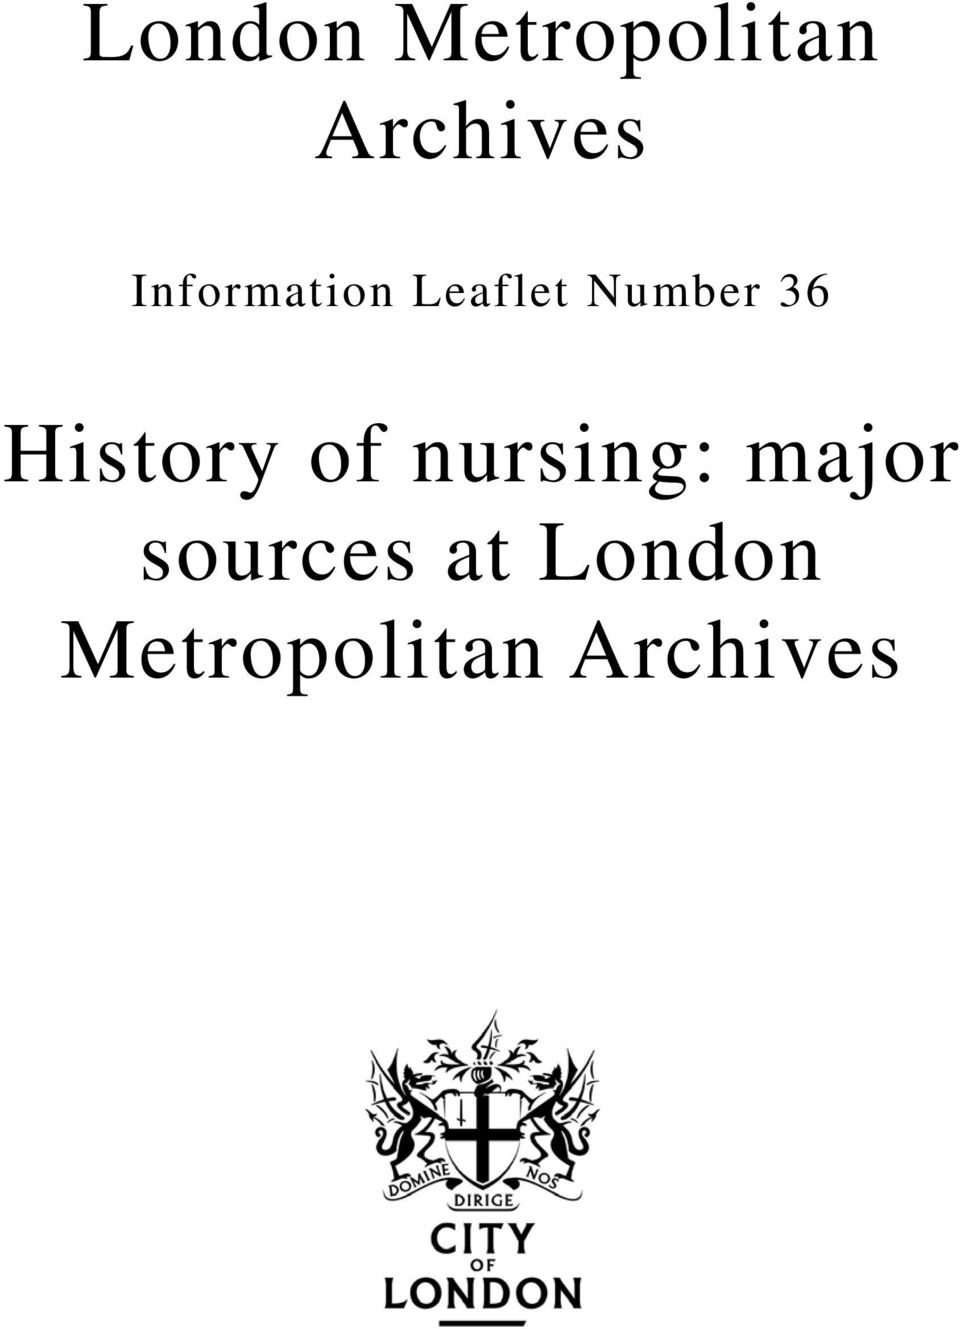 History of nursing: major